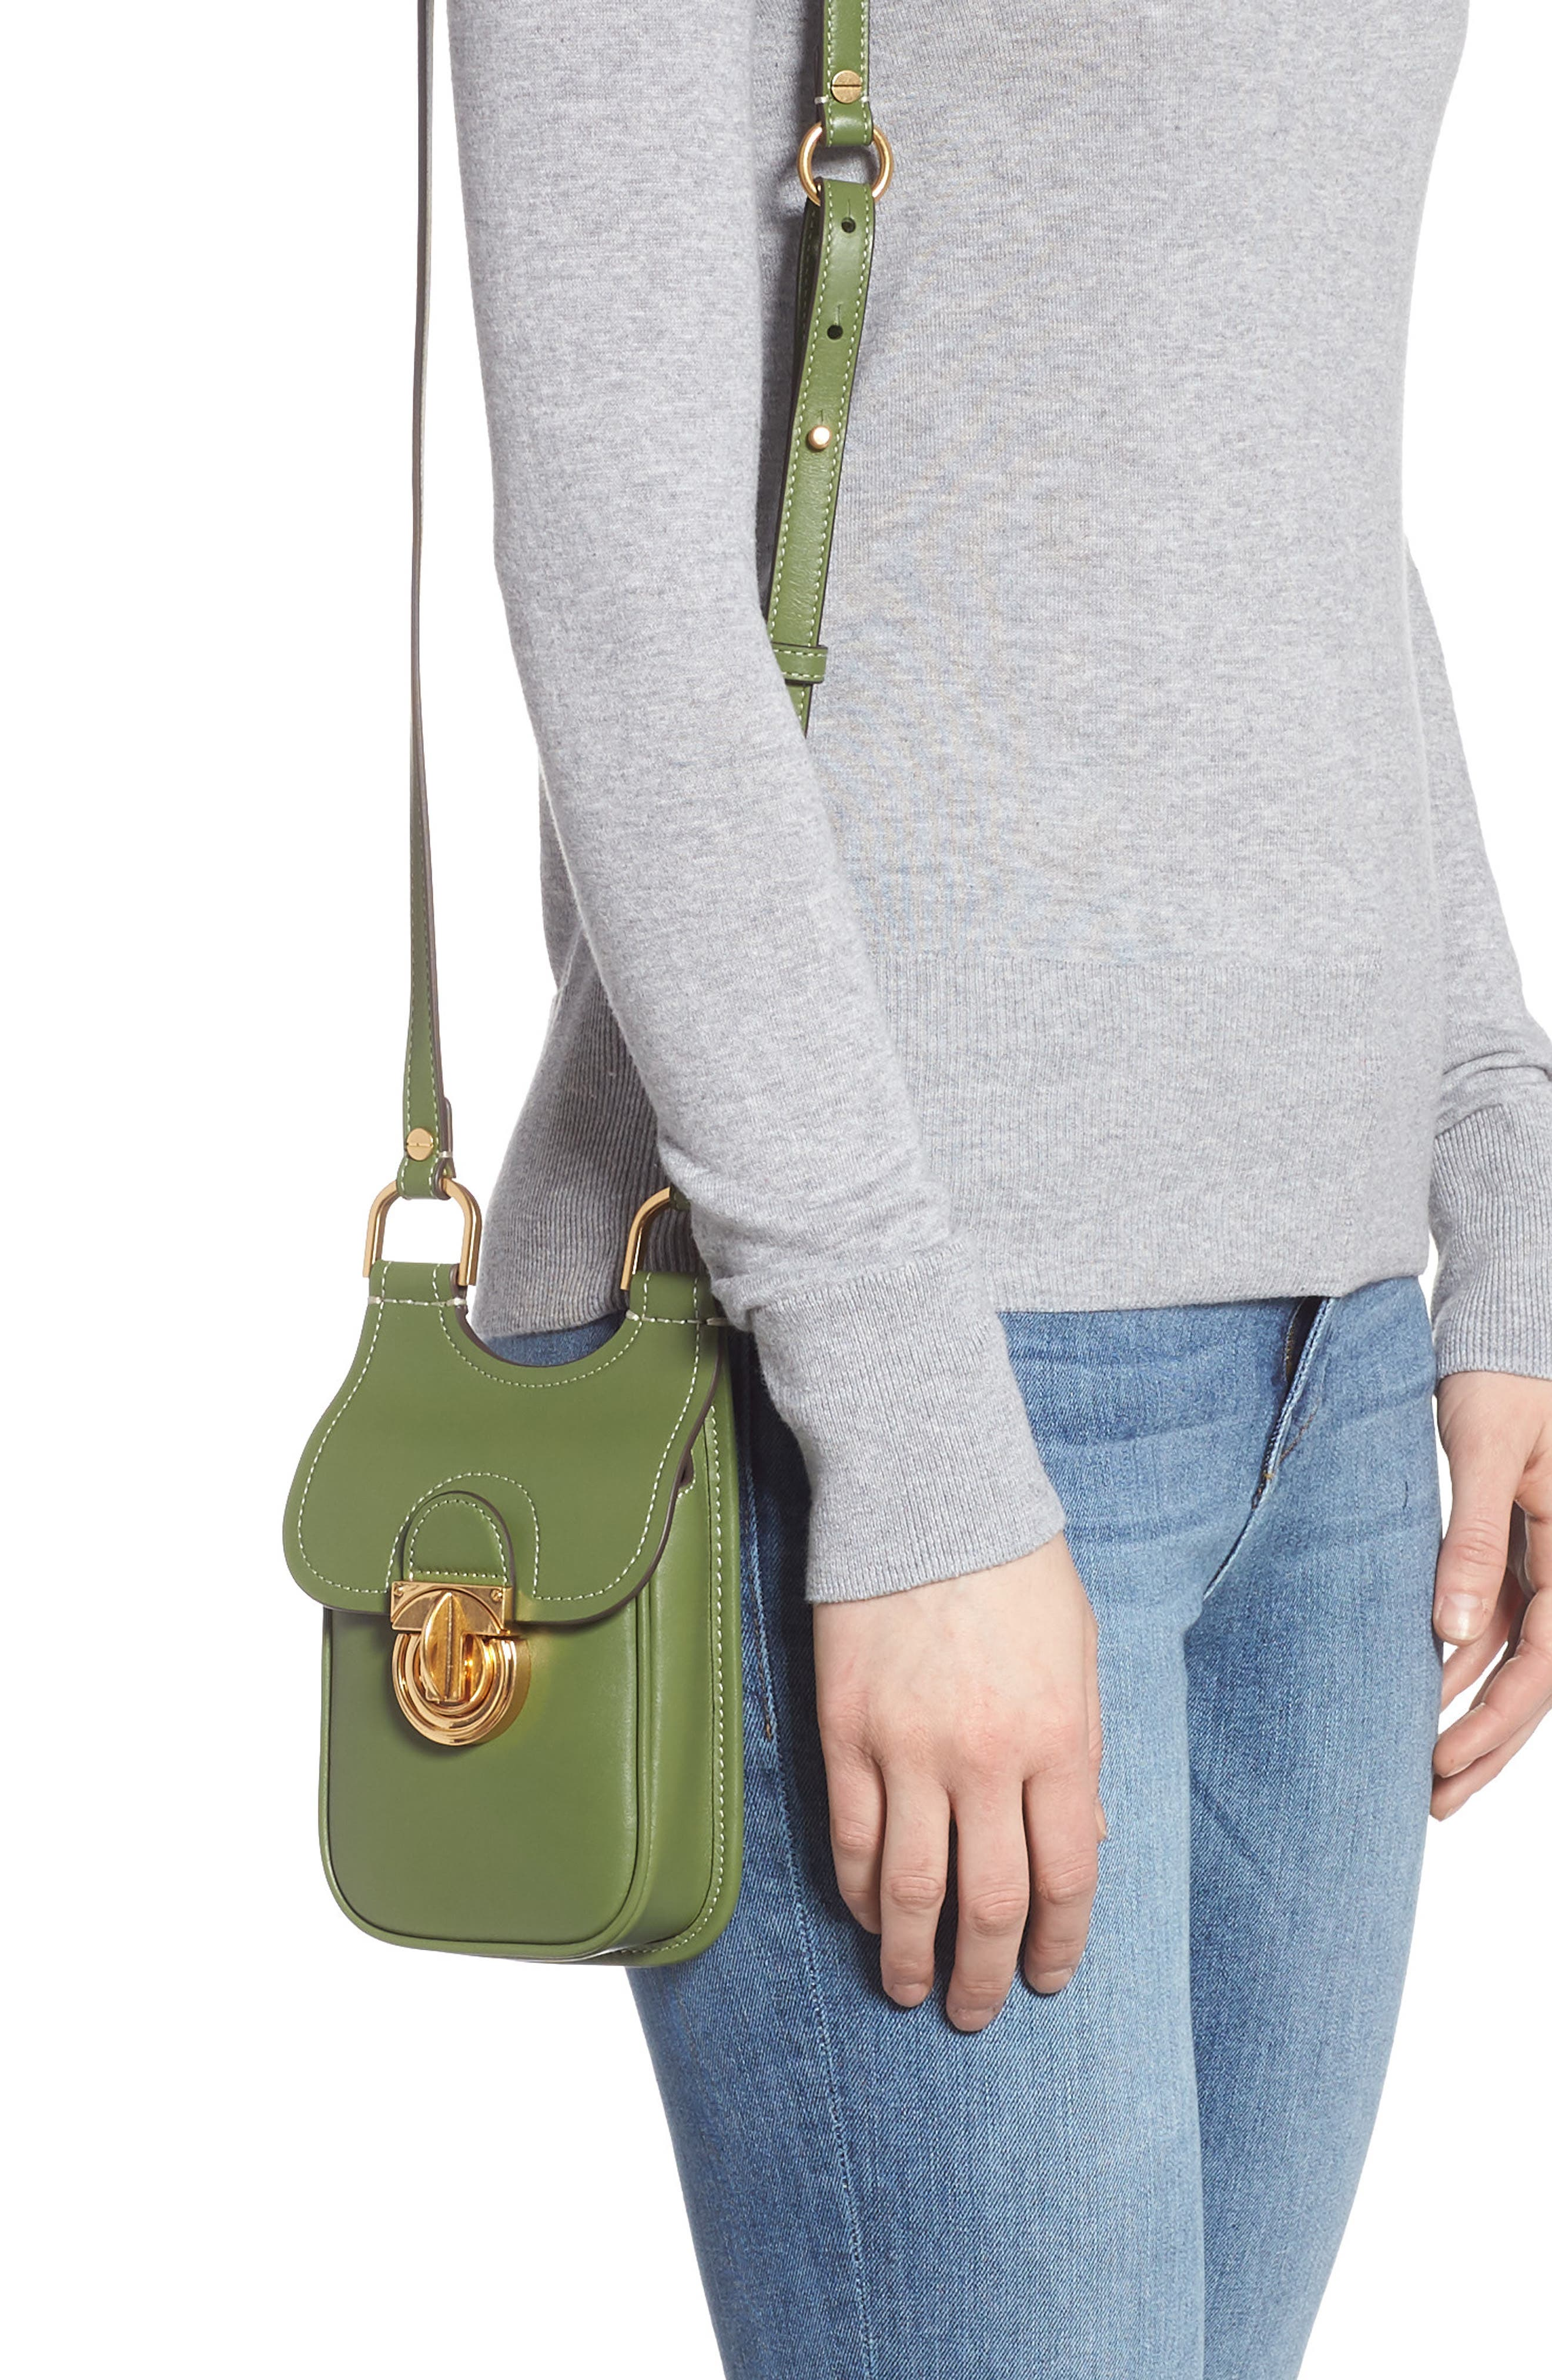 TORY BURCH, James Leather Phone Crossbody Bag, Alternate thumbnail 2, color, SPINACH